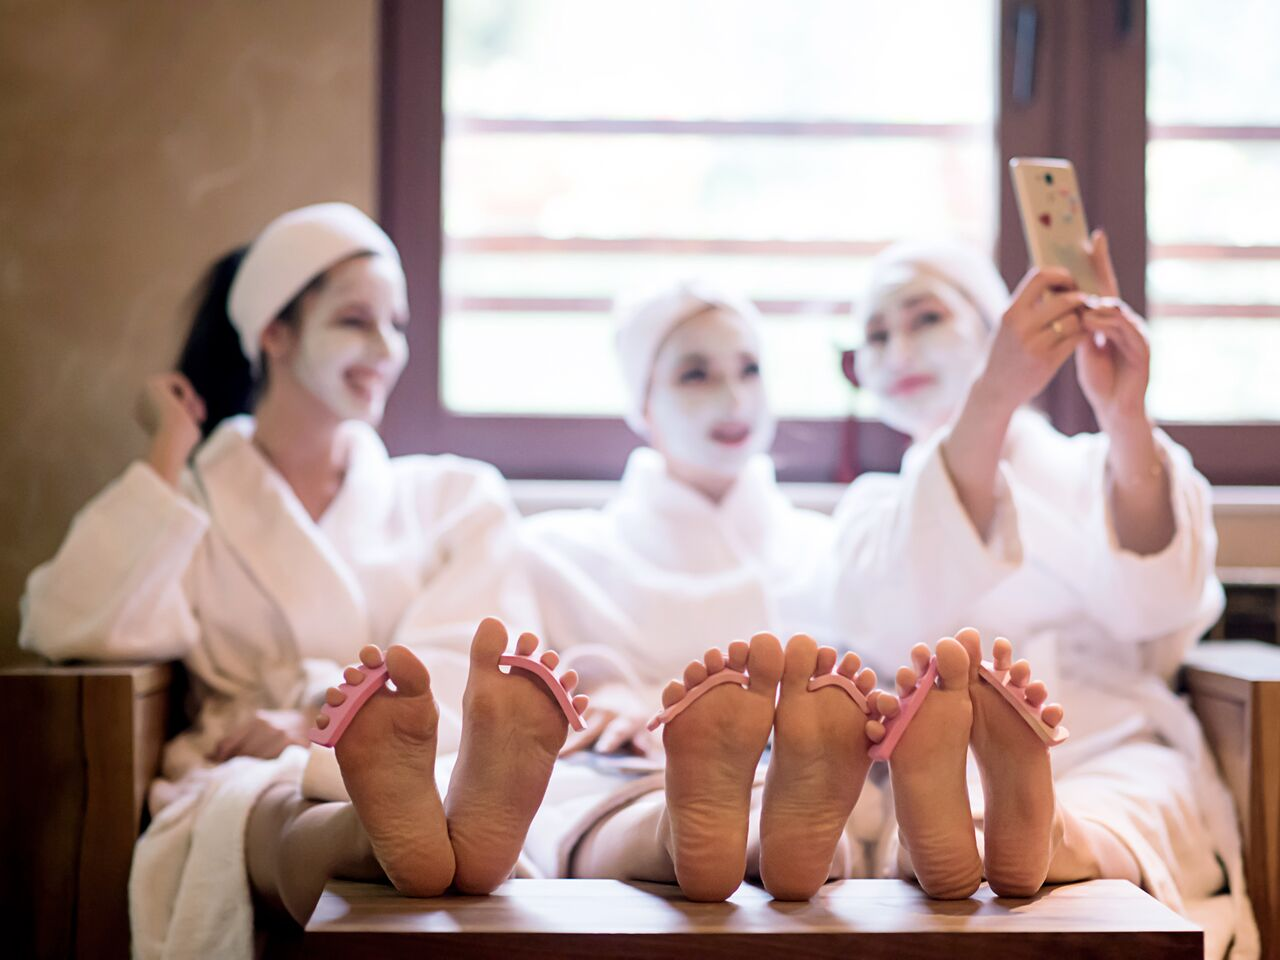 Three ladies getting facials and pedicures while taking a selfie